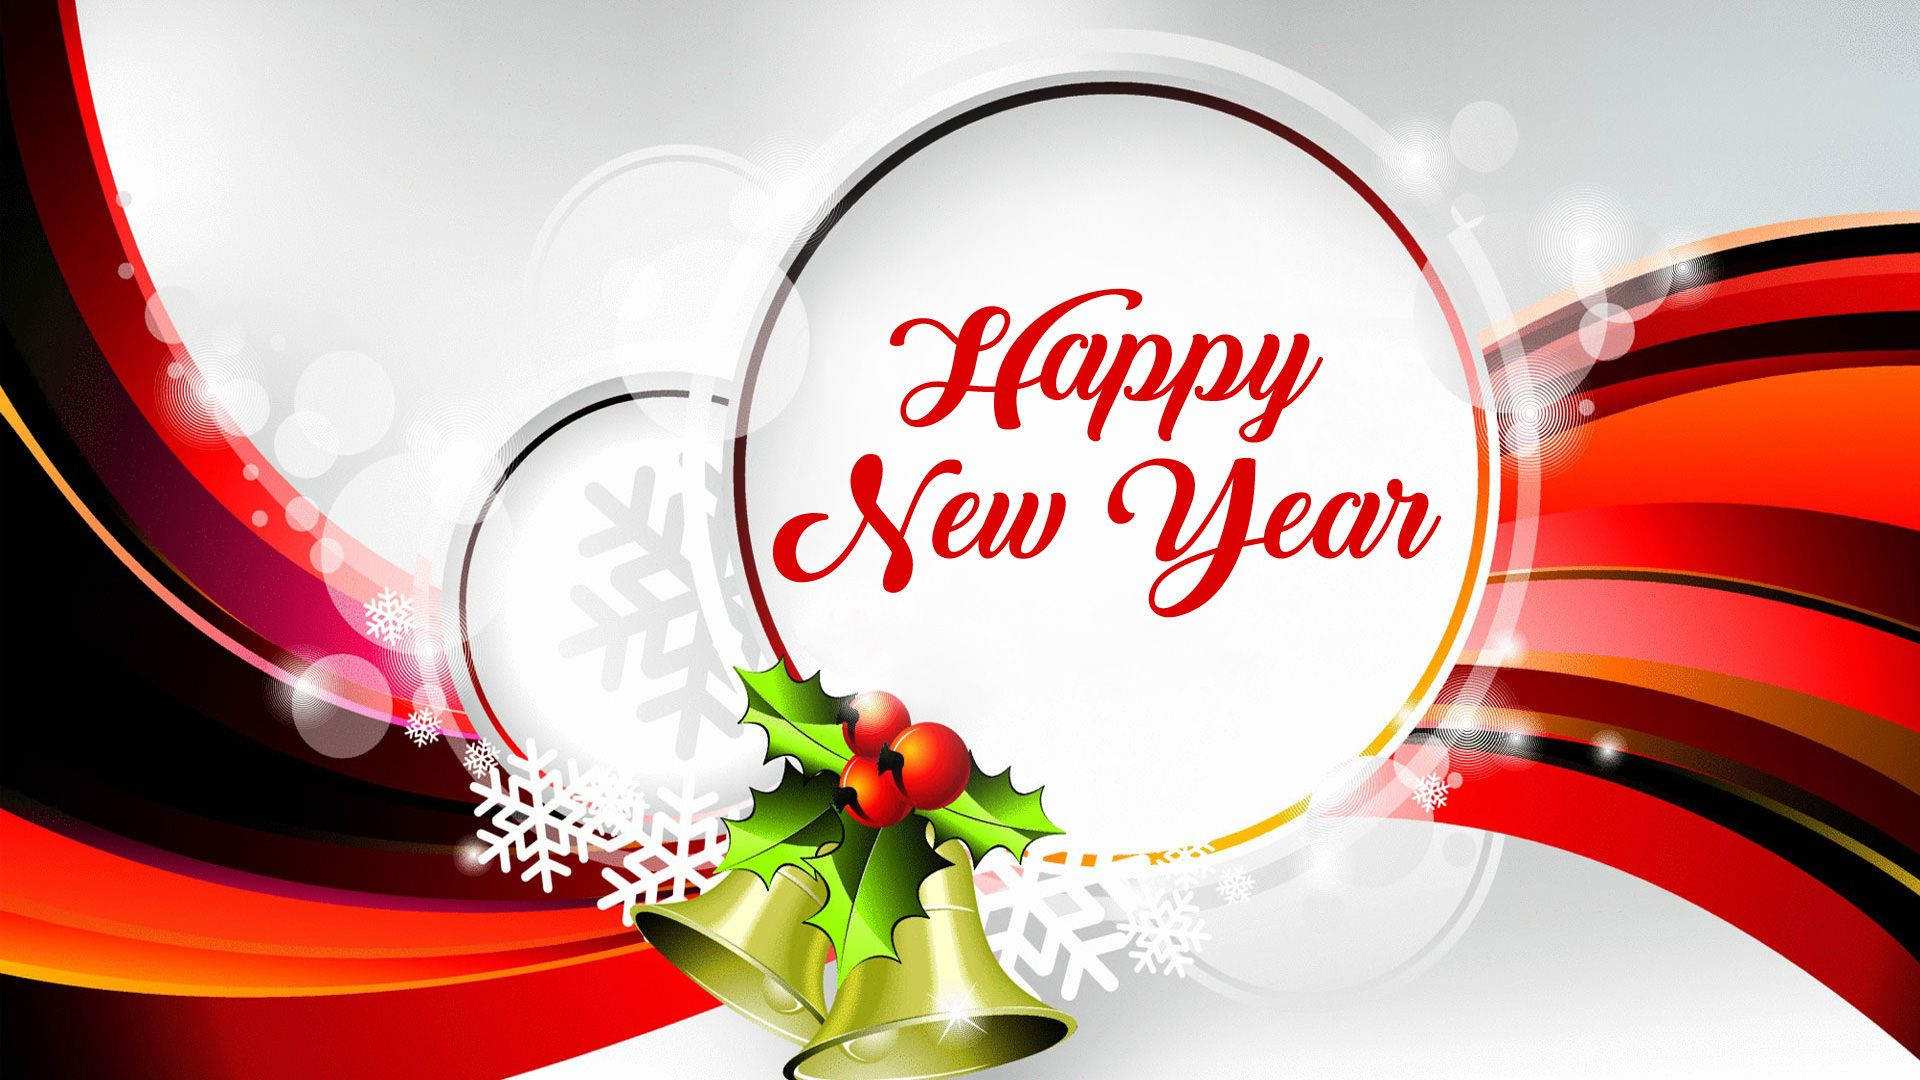 Happy New Year 2020 hd wallpaper for laptop